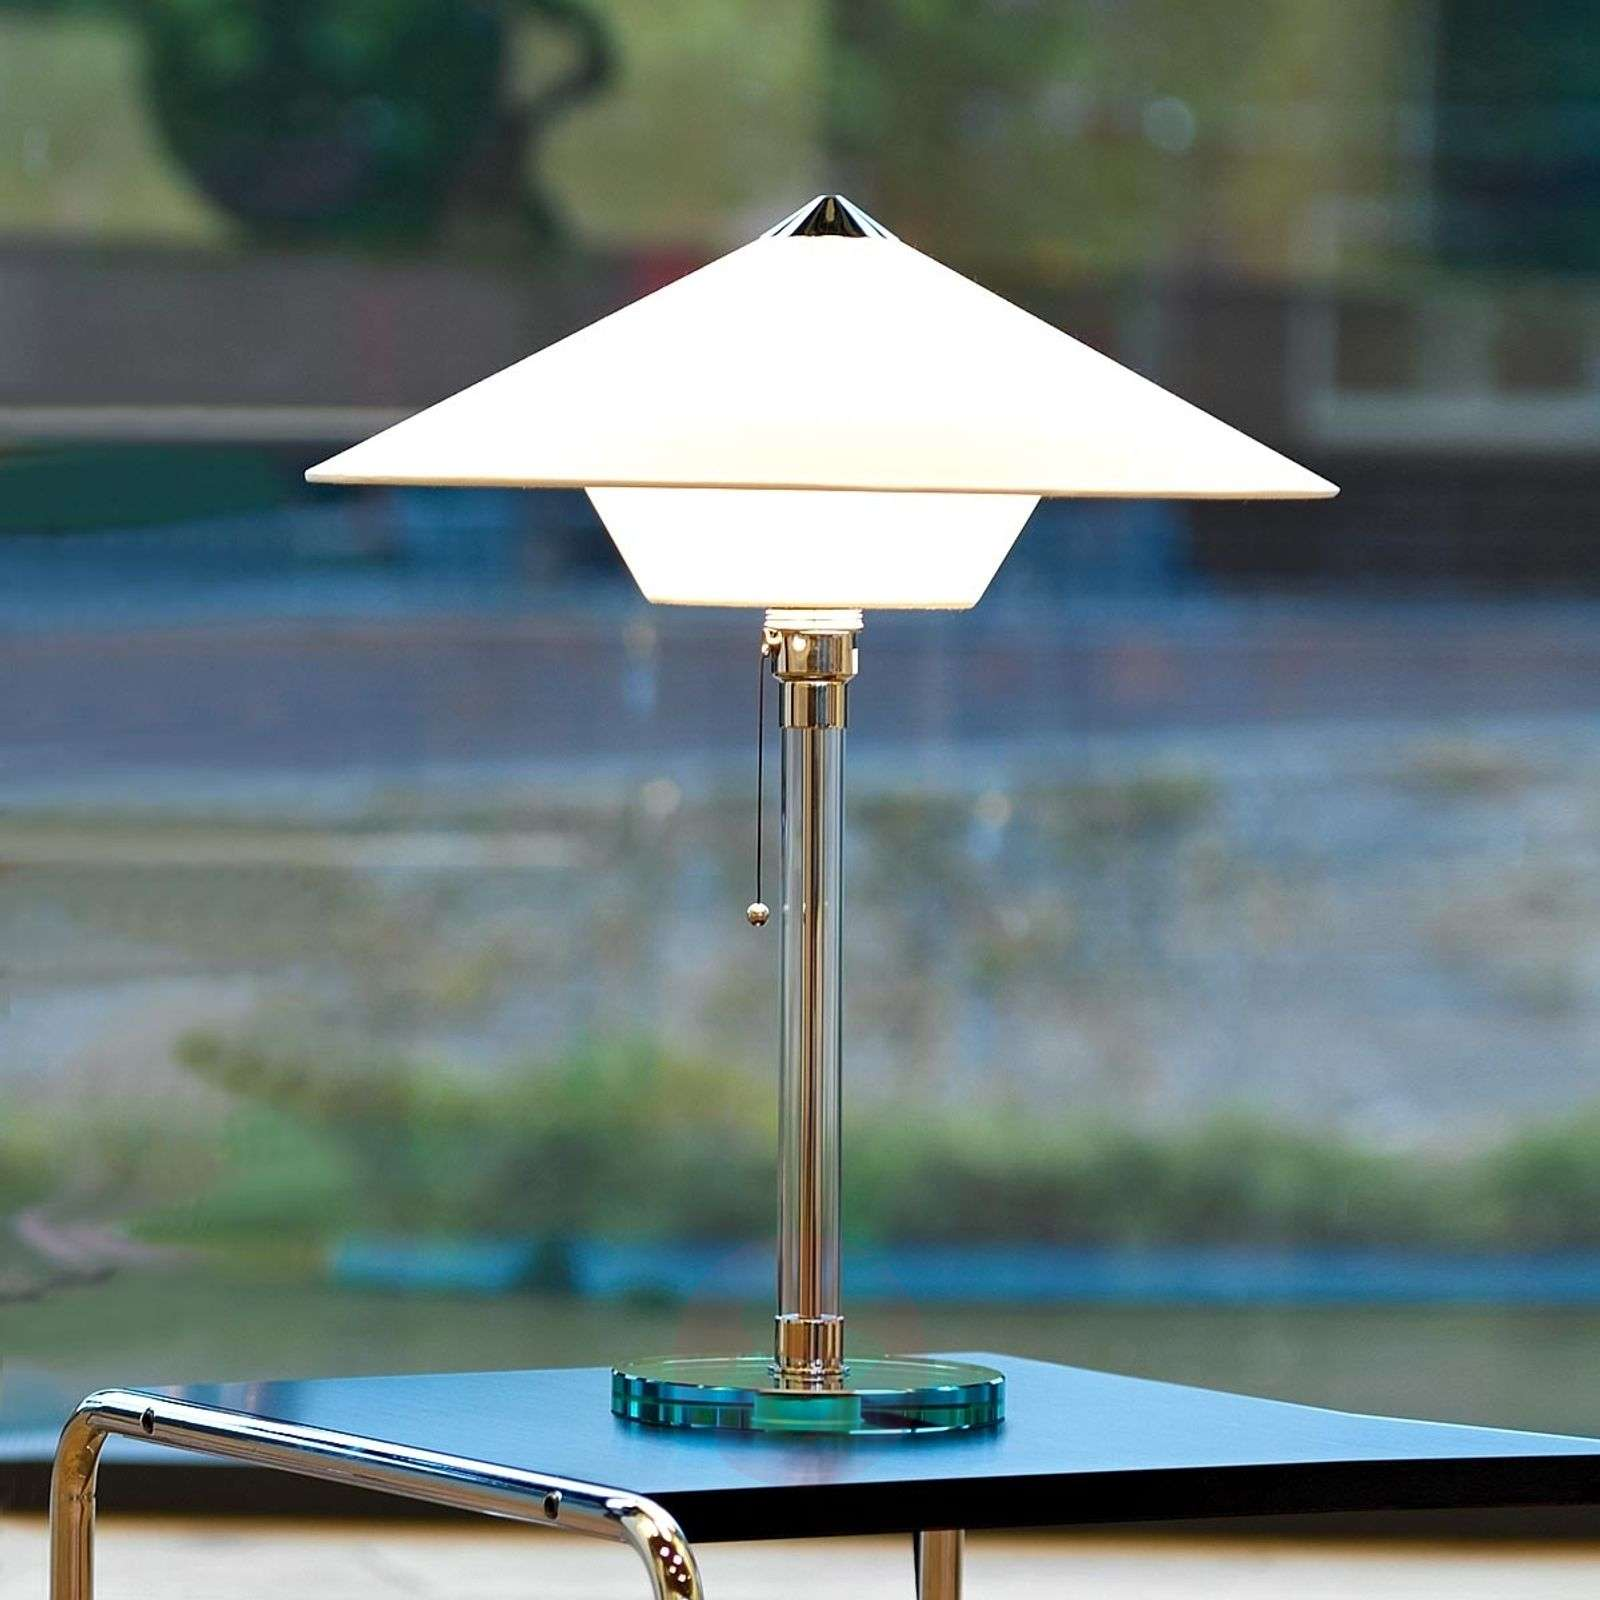 Masterful Wagenfeld table lamp-9030006X-01